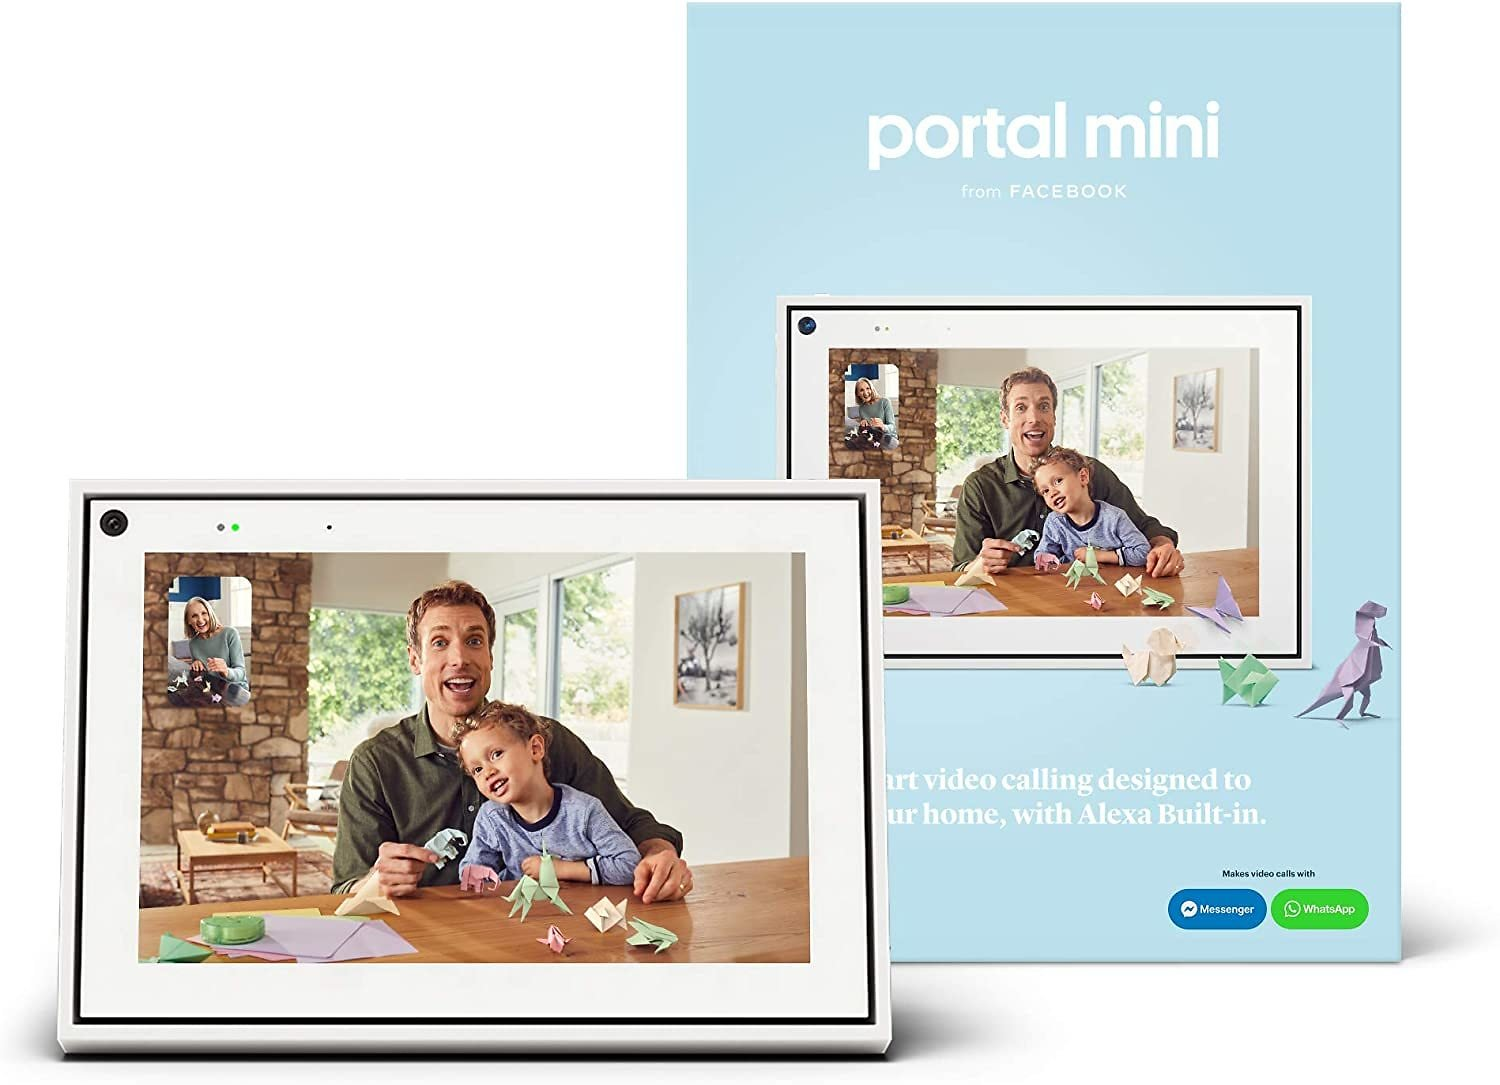 """Facebook Portal Mini - Smart Video Calling 8"""" Touch Screen Display with Alexa - 2 Colors"""